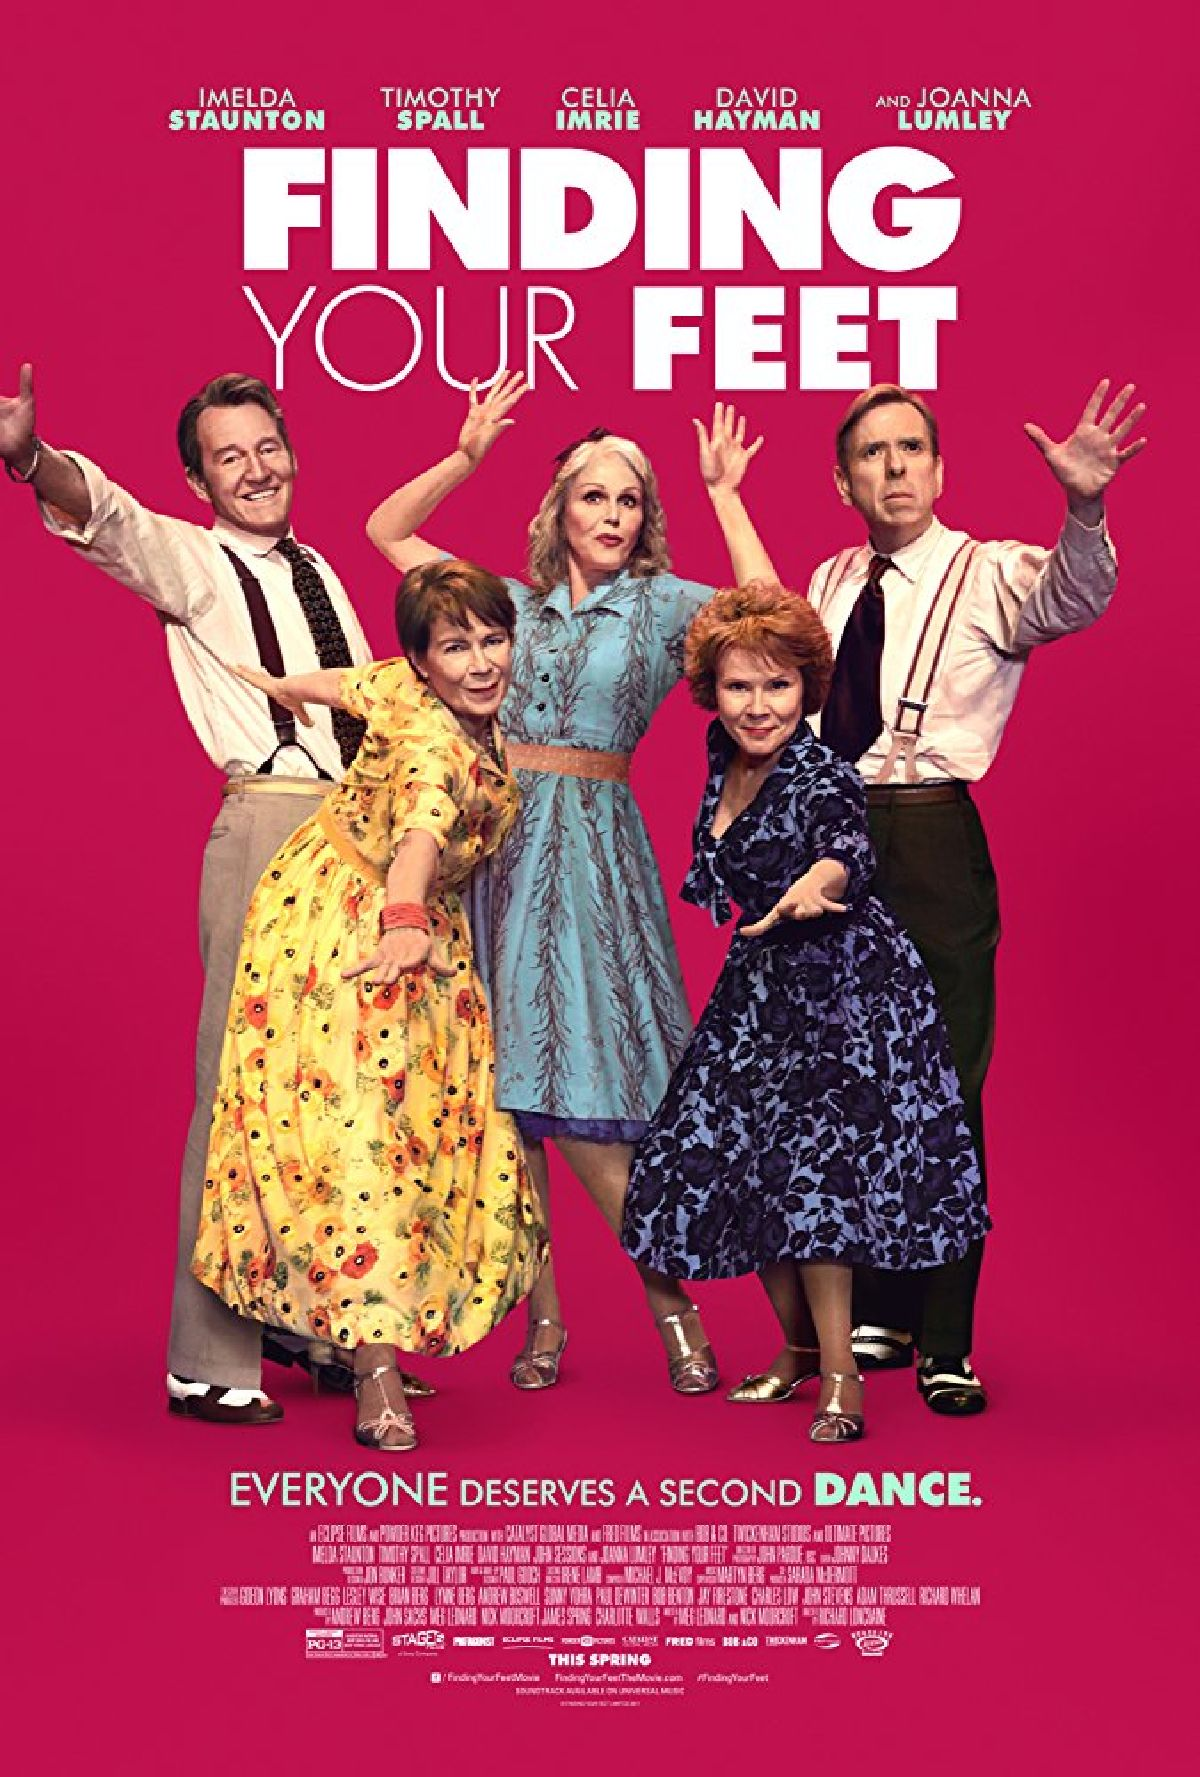 'Finding Your Feet' movie poster